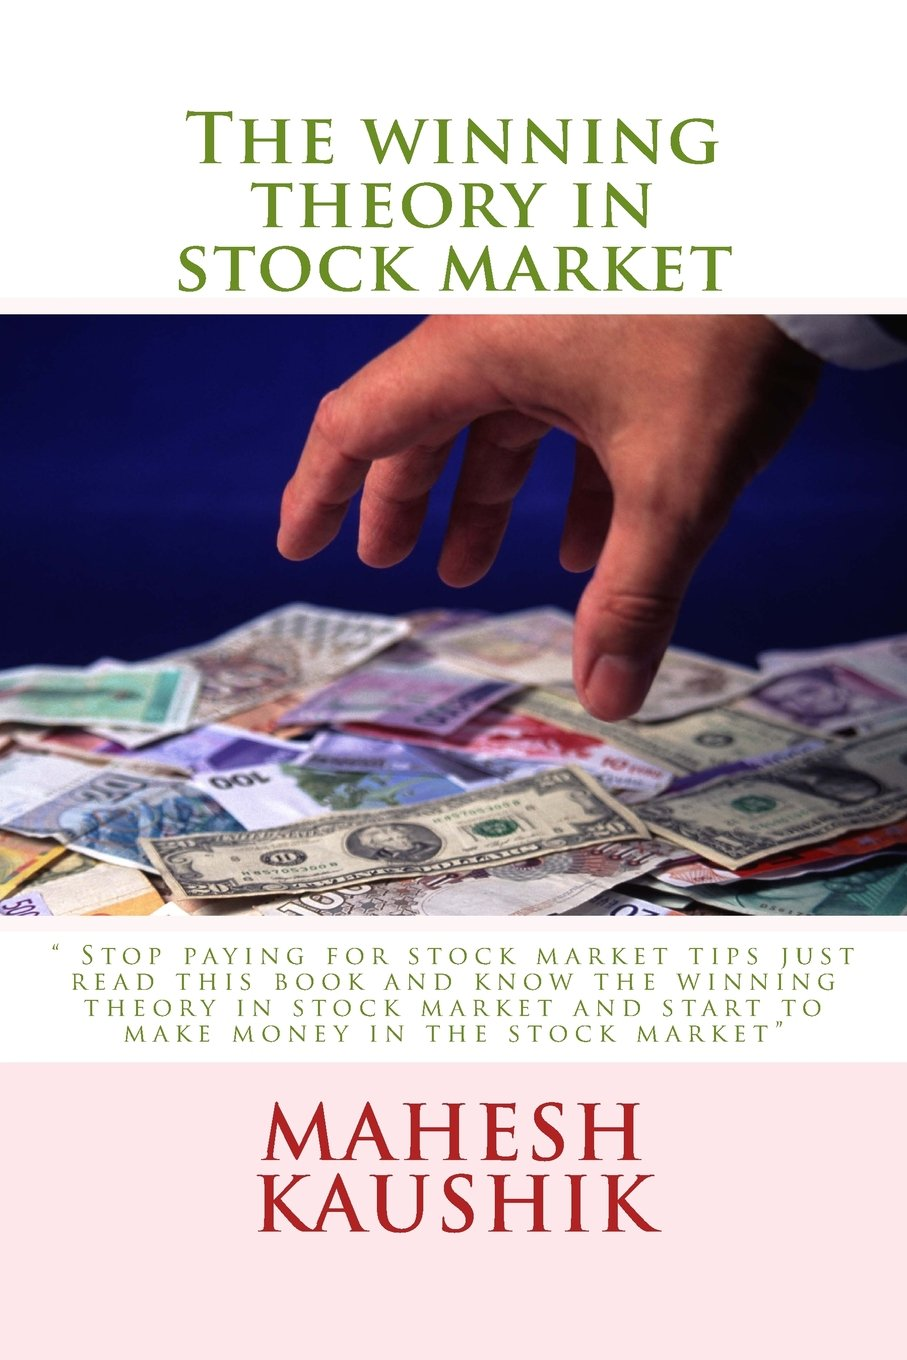 The Winning Theory in Stock Market